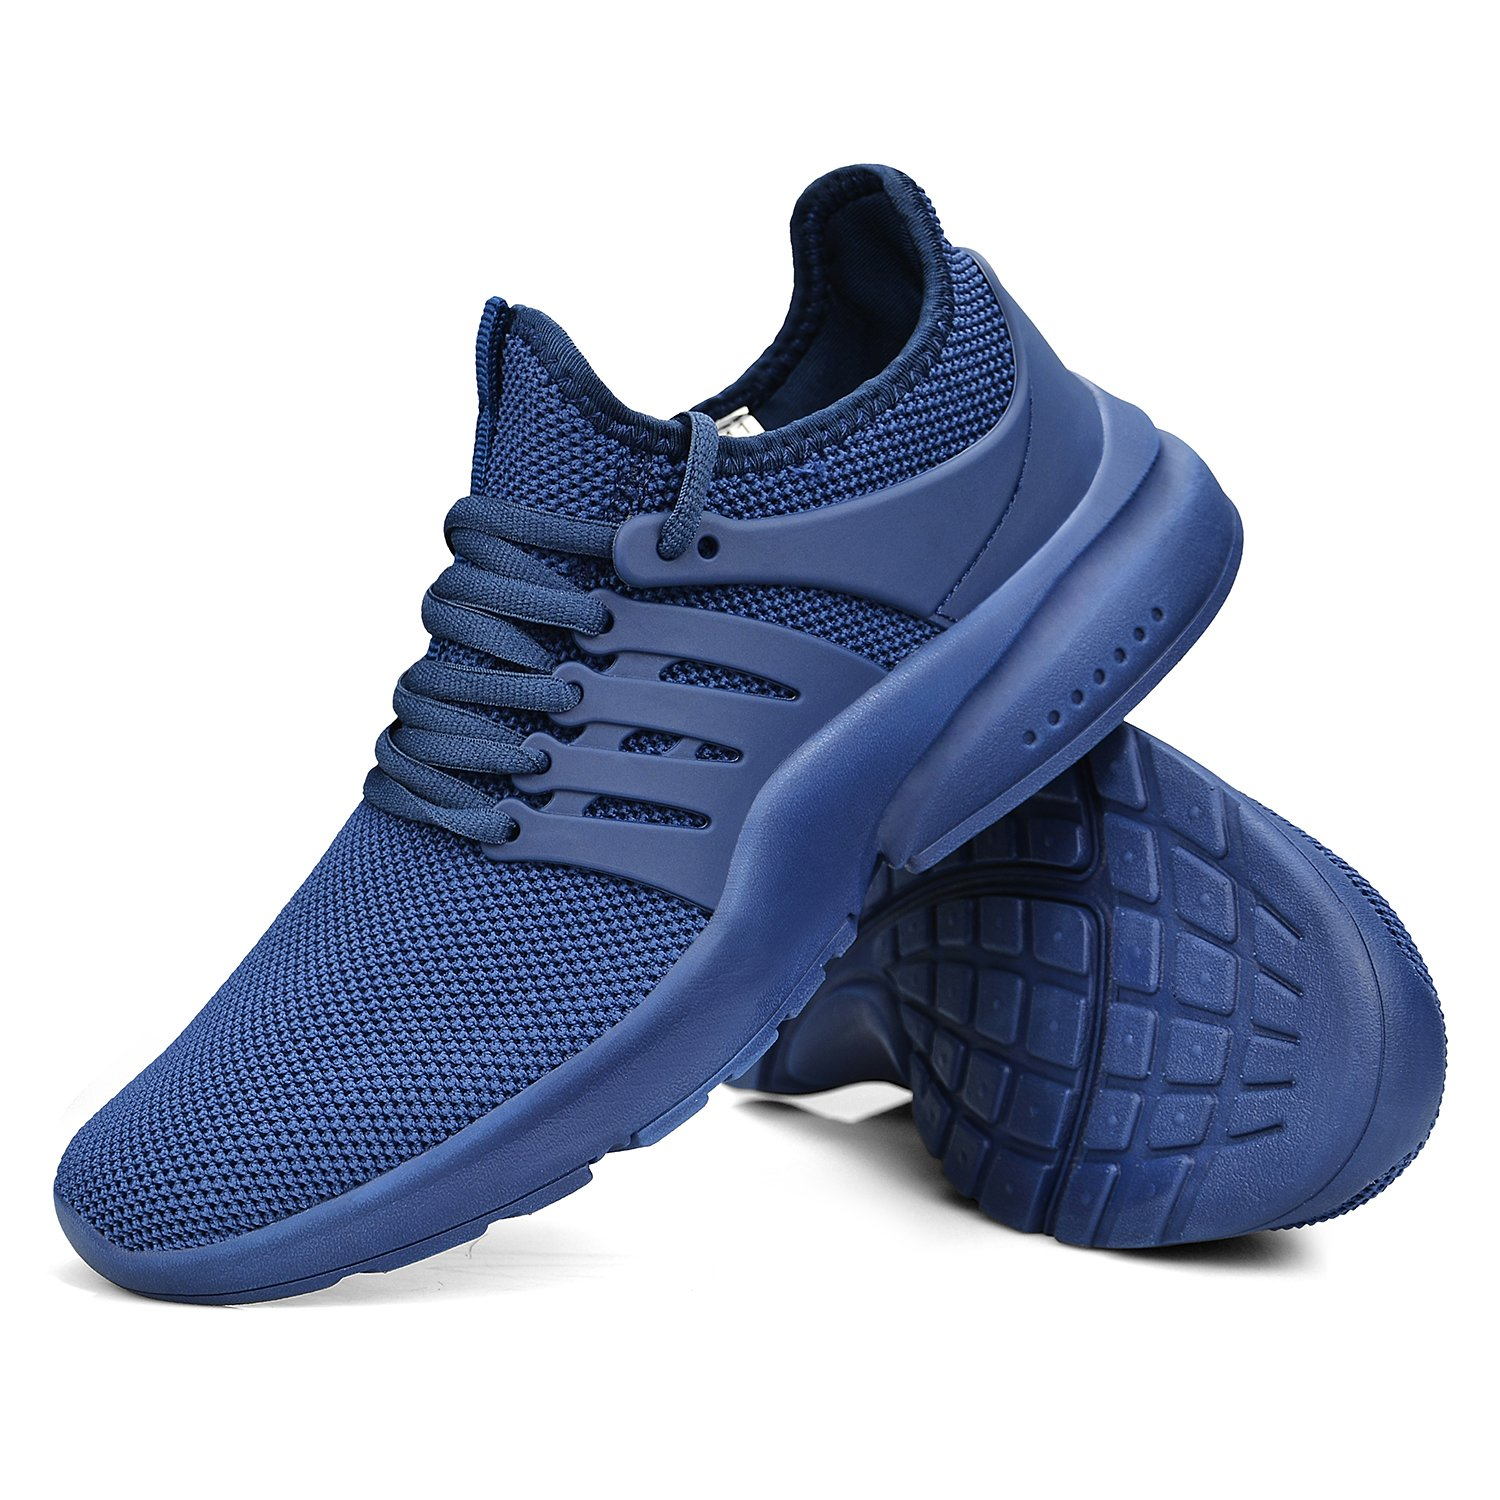 ZOCAVIA Women's Running Shoes Ultra Lightweight Breathable Mesh Sport Sneaker Casual Athletic Shoes B07DN5NC2Q 7 B(M) US|Blue